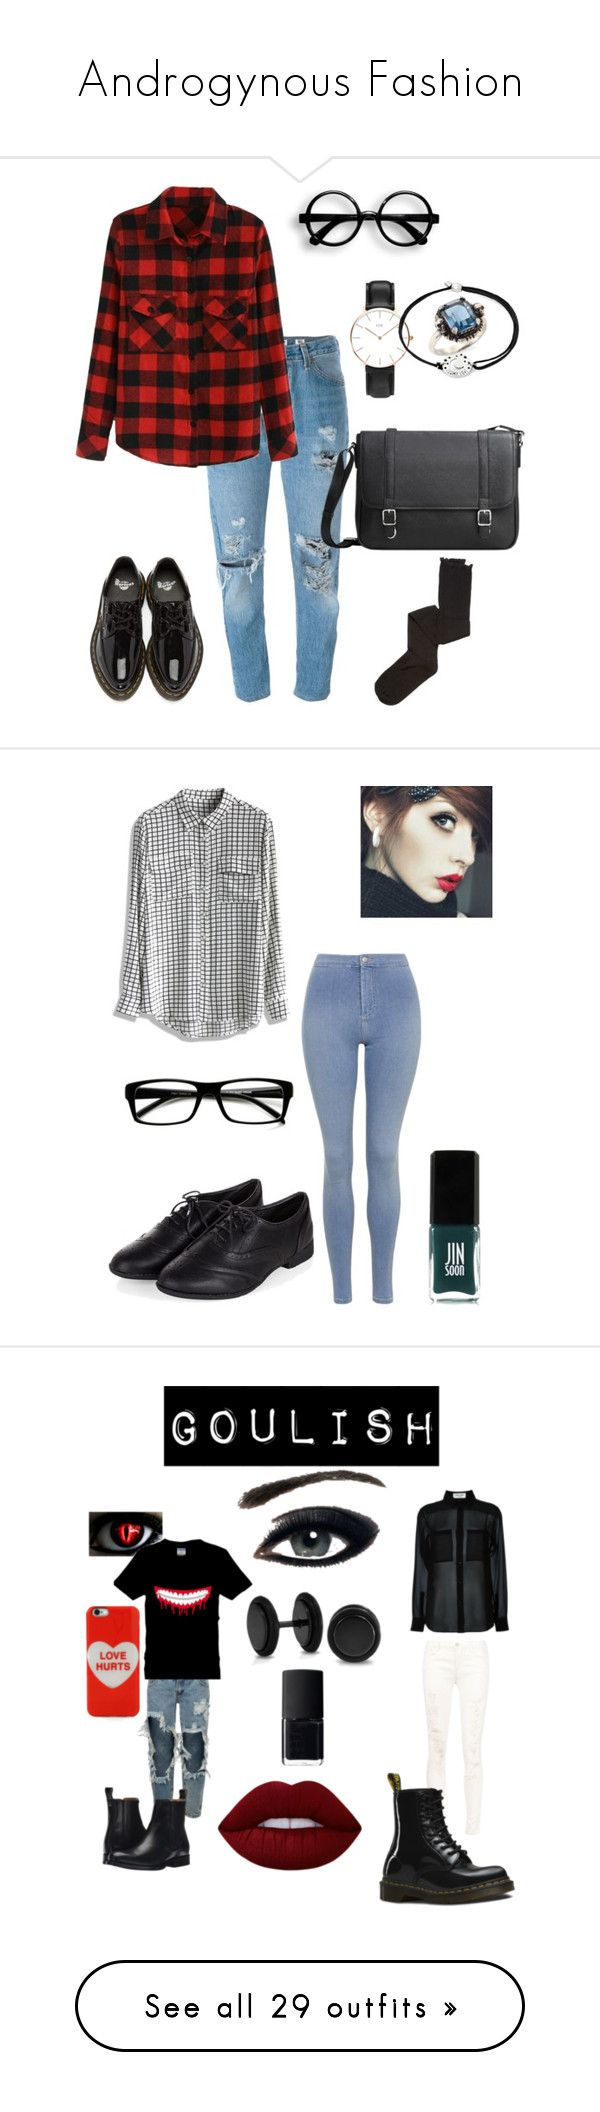 """""""Androgynous Fashion"""" by riley-is-ridiculous ❤ liked on Polyvore featuring Daniel Wellington, RE/DONE, Dr. Martens, Alex and Ani, Alexander McQueen, MANGO, Intimately Free People, Chicwish, Topshop and ZeroUV"""